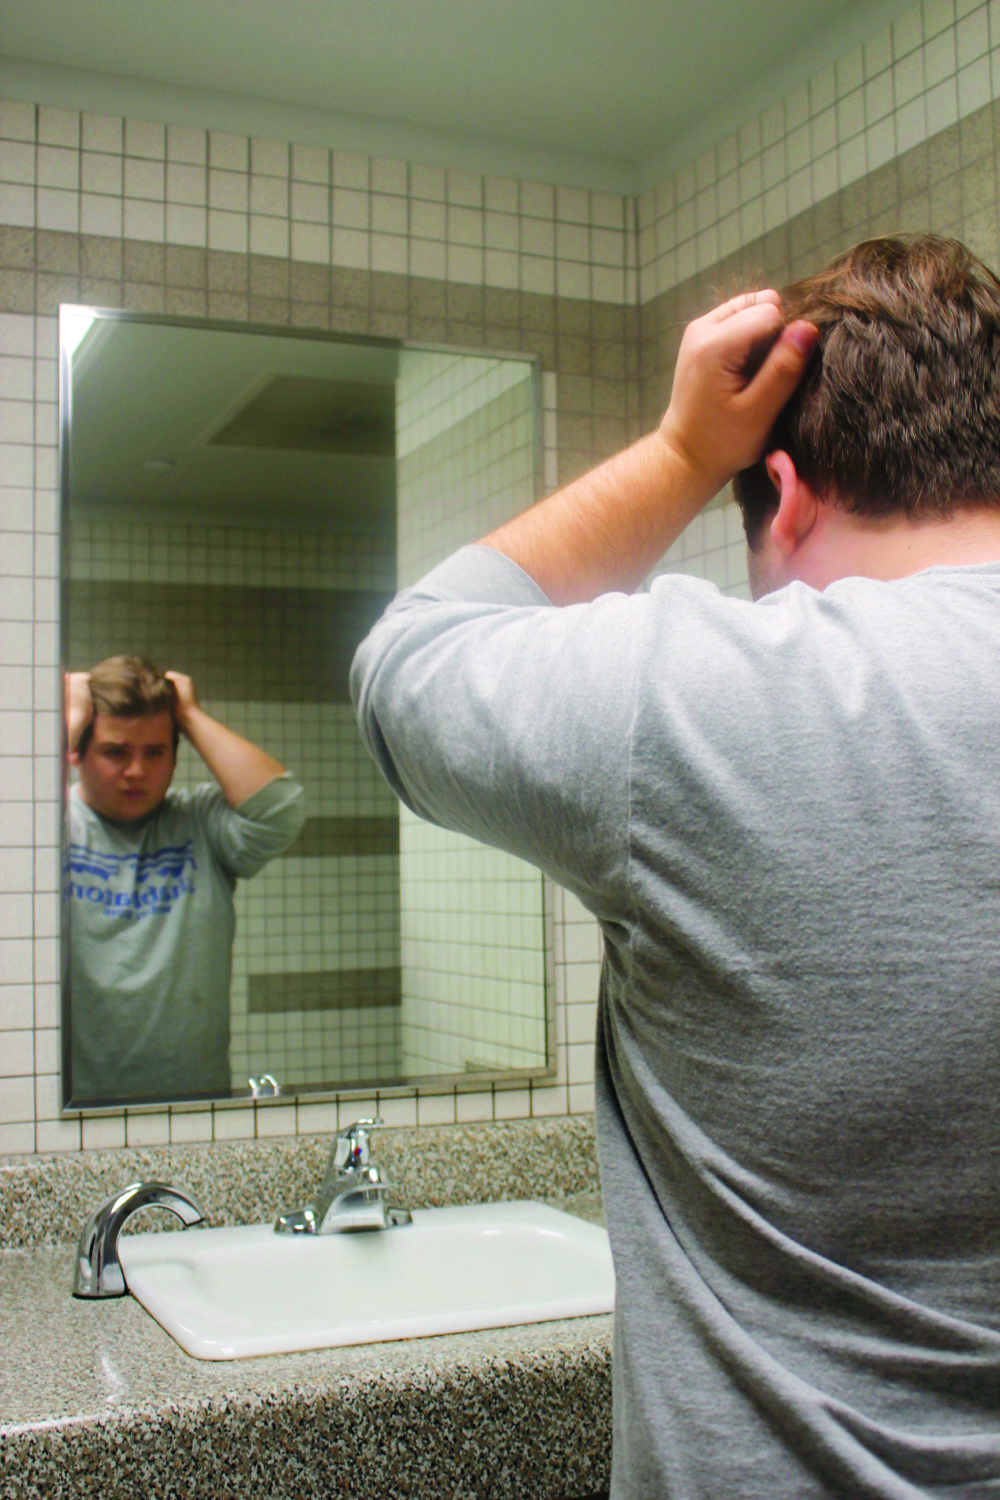 White male stands in front of a mirror